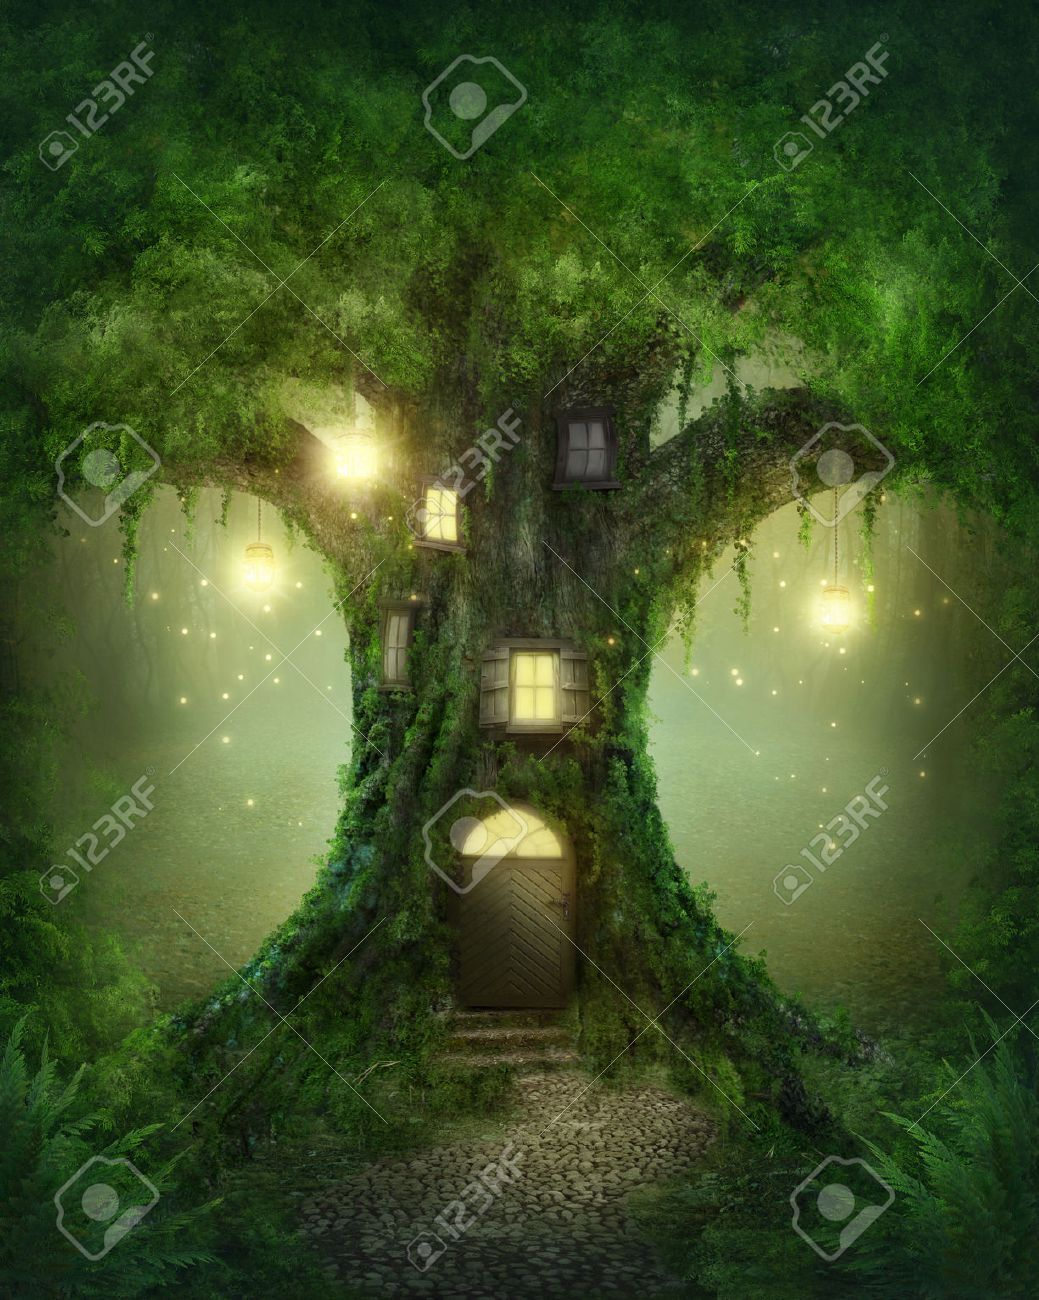 Fantasy tree house in forest Stock Photo - 22925111